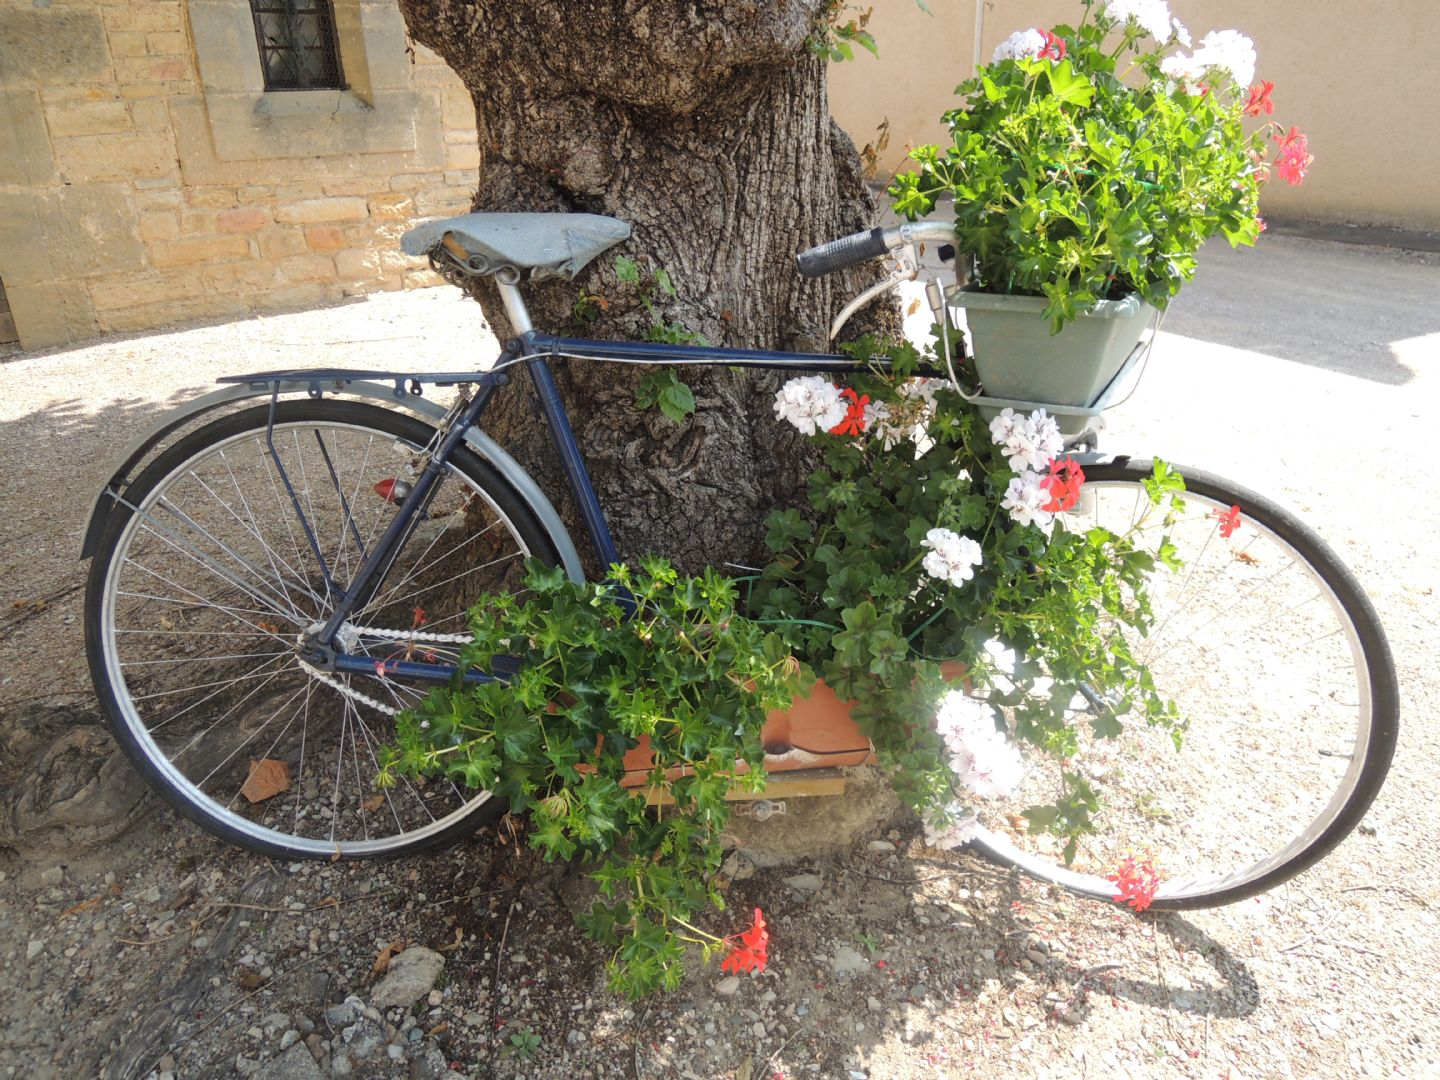 leisurecyclingfrance4.JPG - France - Dordogne Delights - Self-Guided Leisure Cycling Holiday - Leisure Cycling